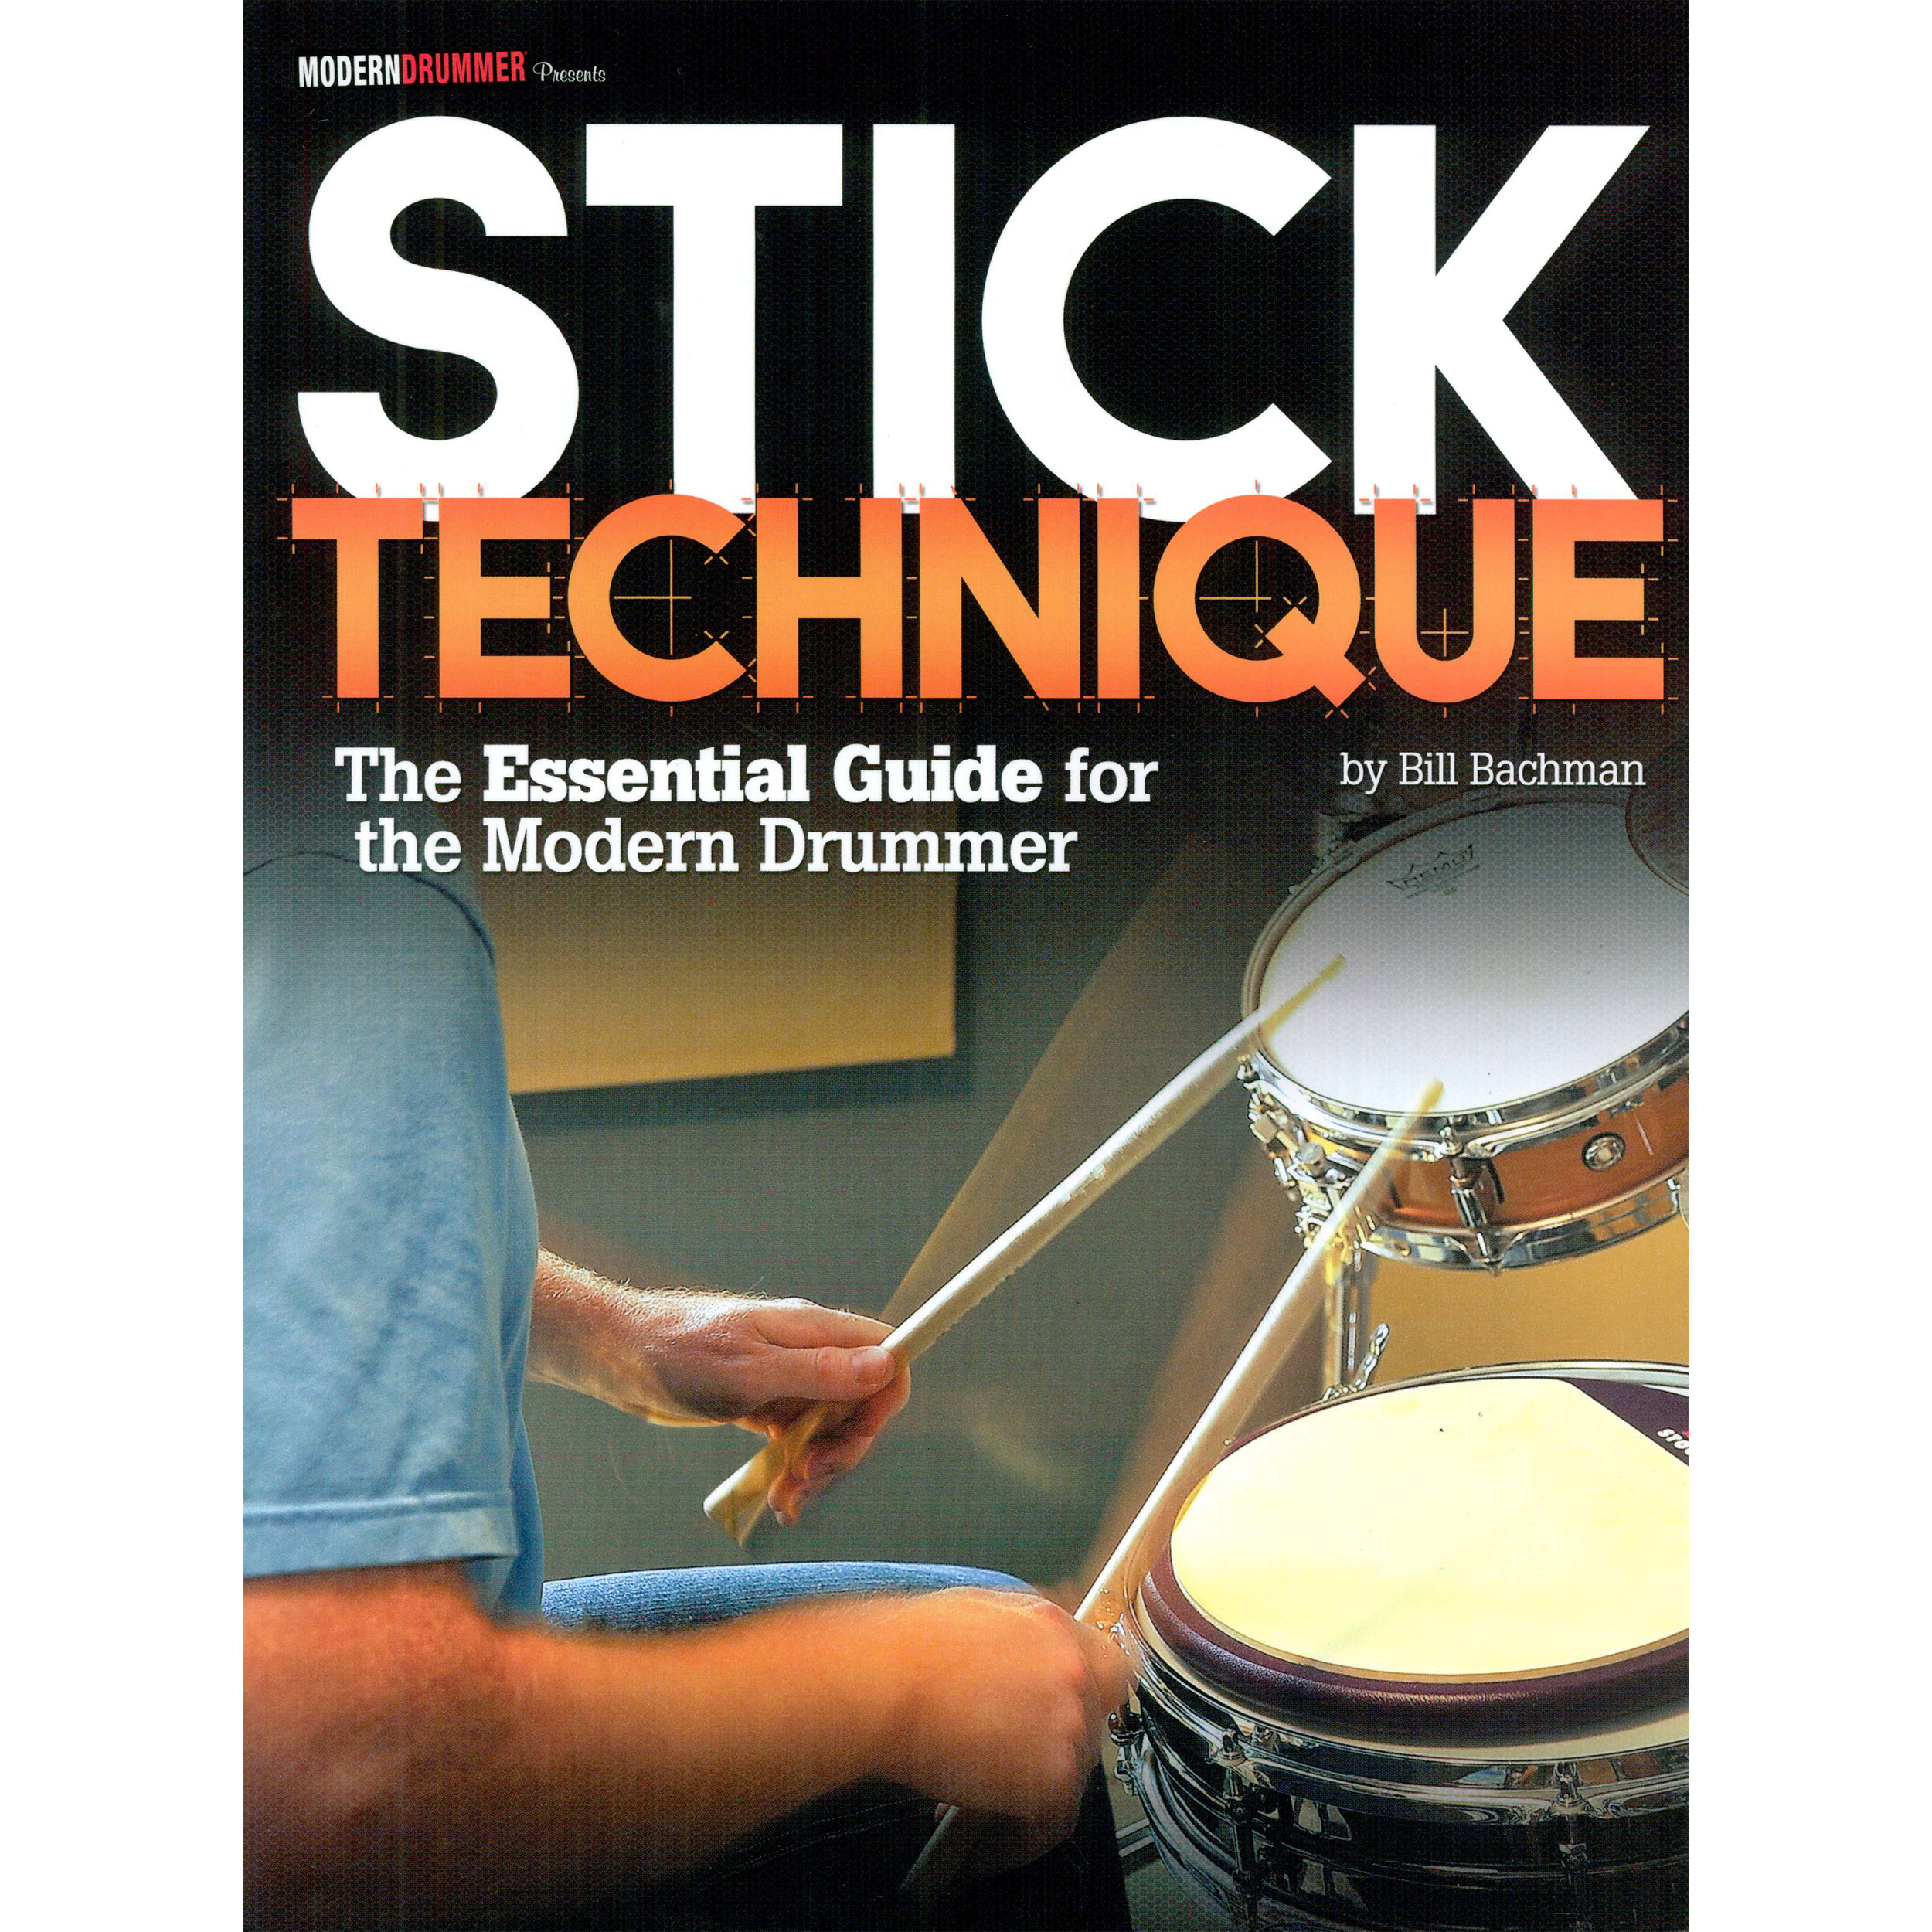 Stick Technique by Bill Bachman